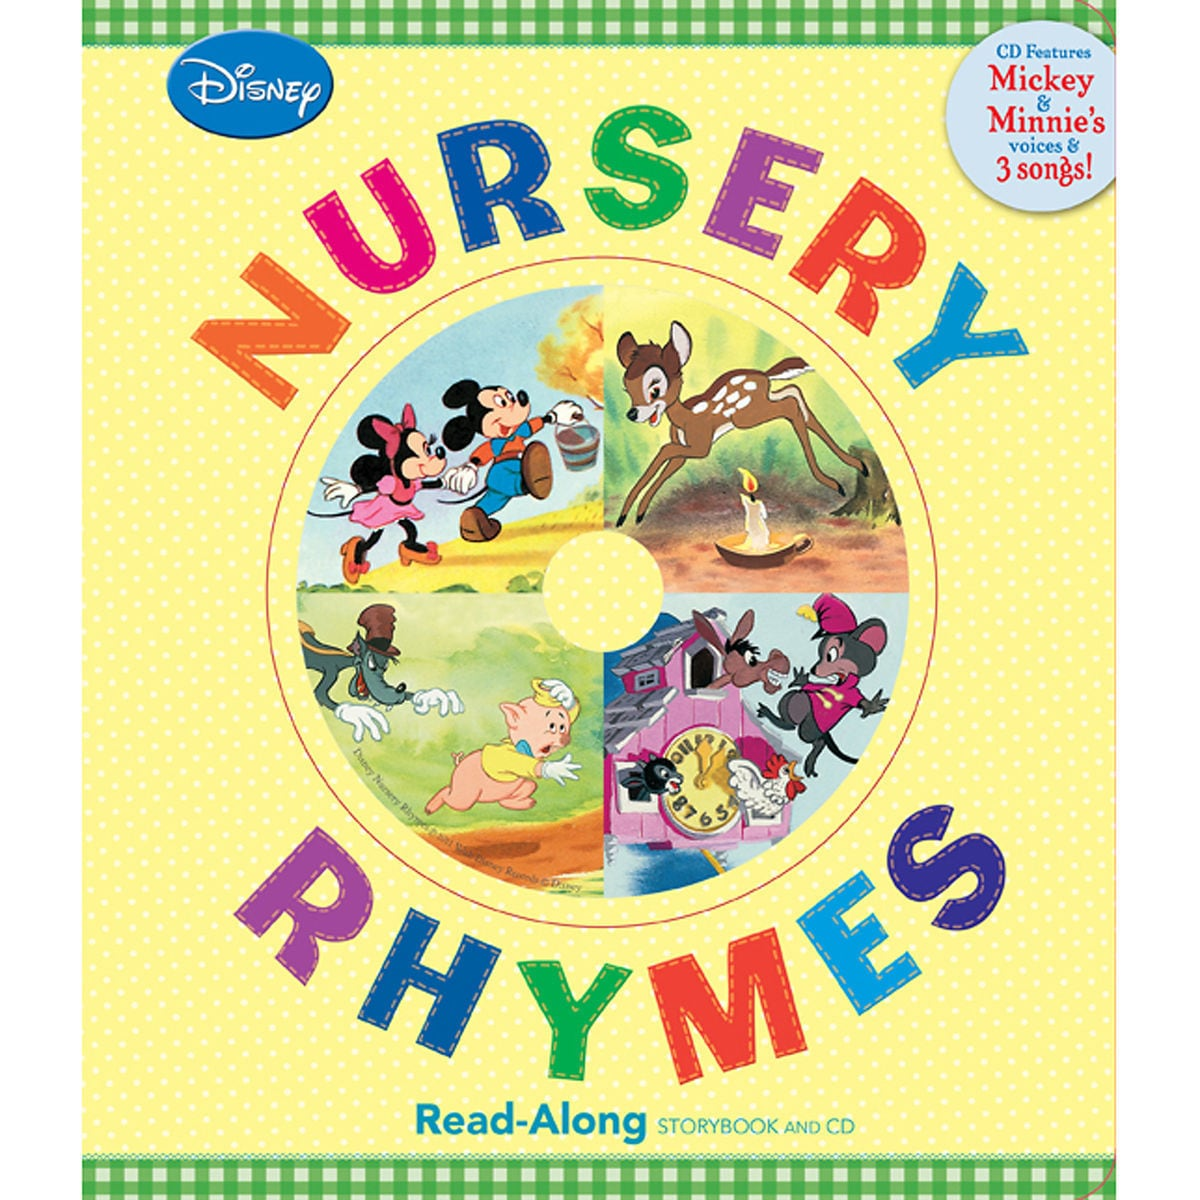 Nursery Rhymes Song-Along Book and CD - Mickey Mouse | shopDisney